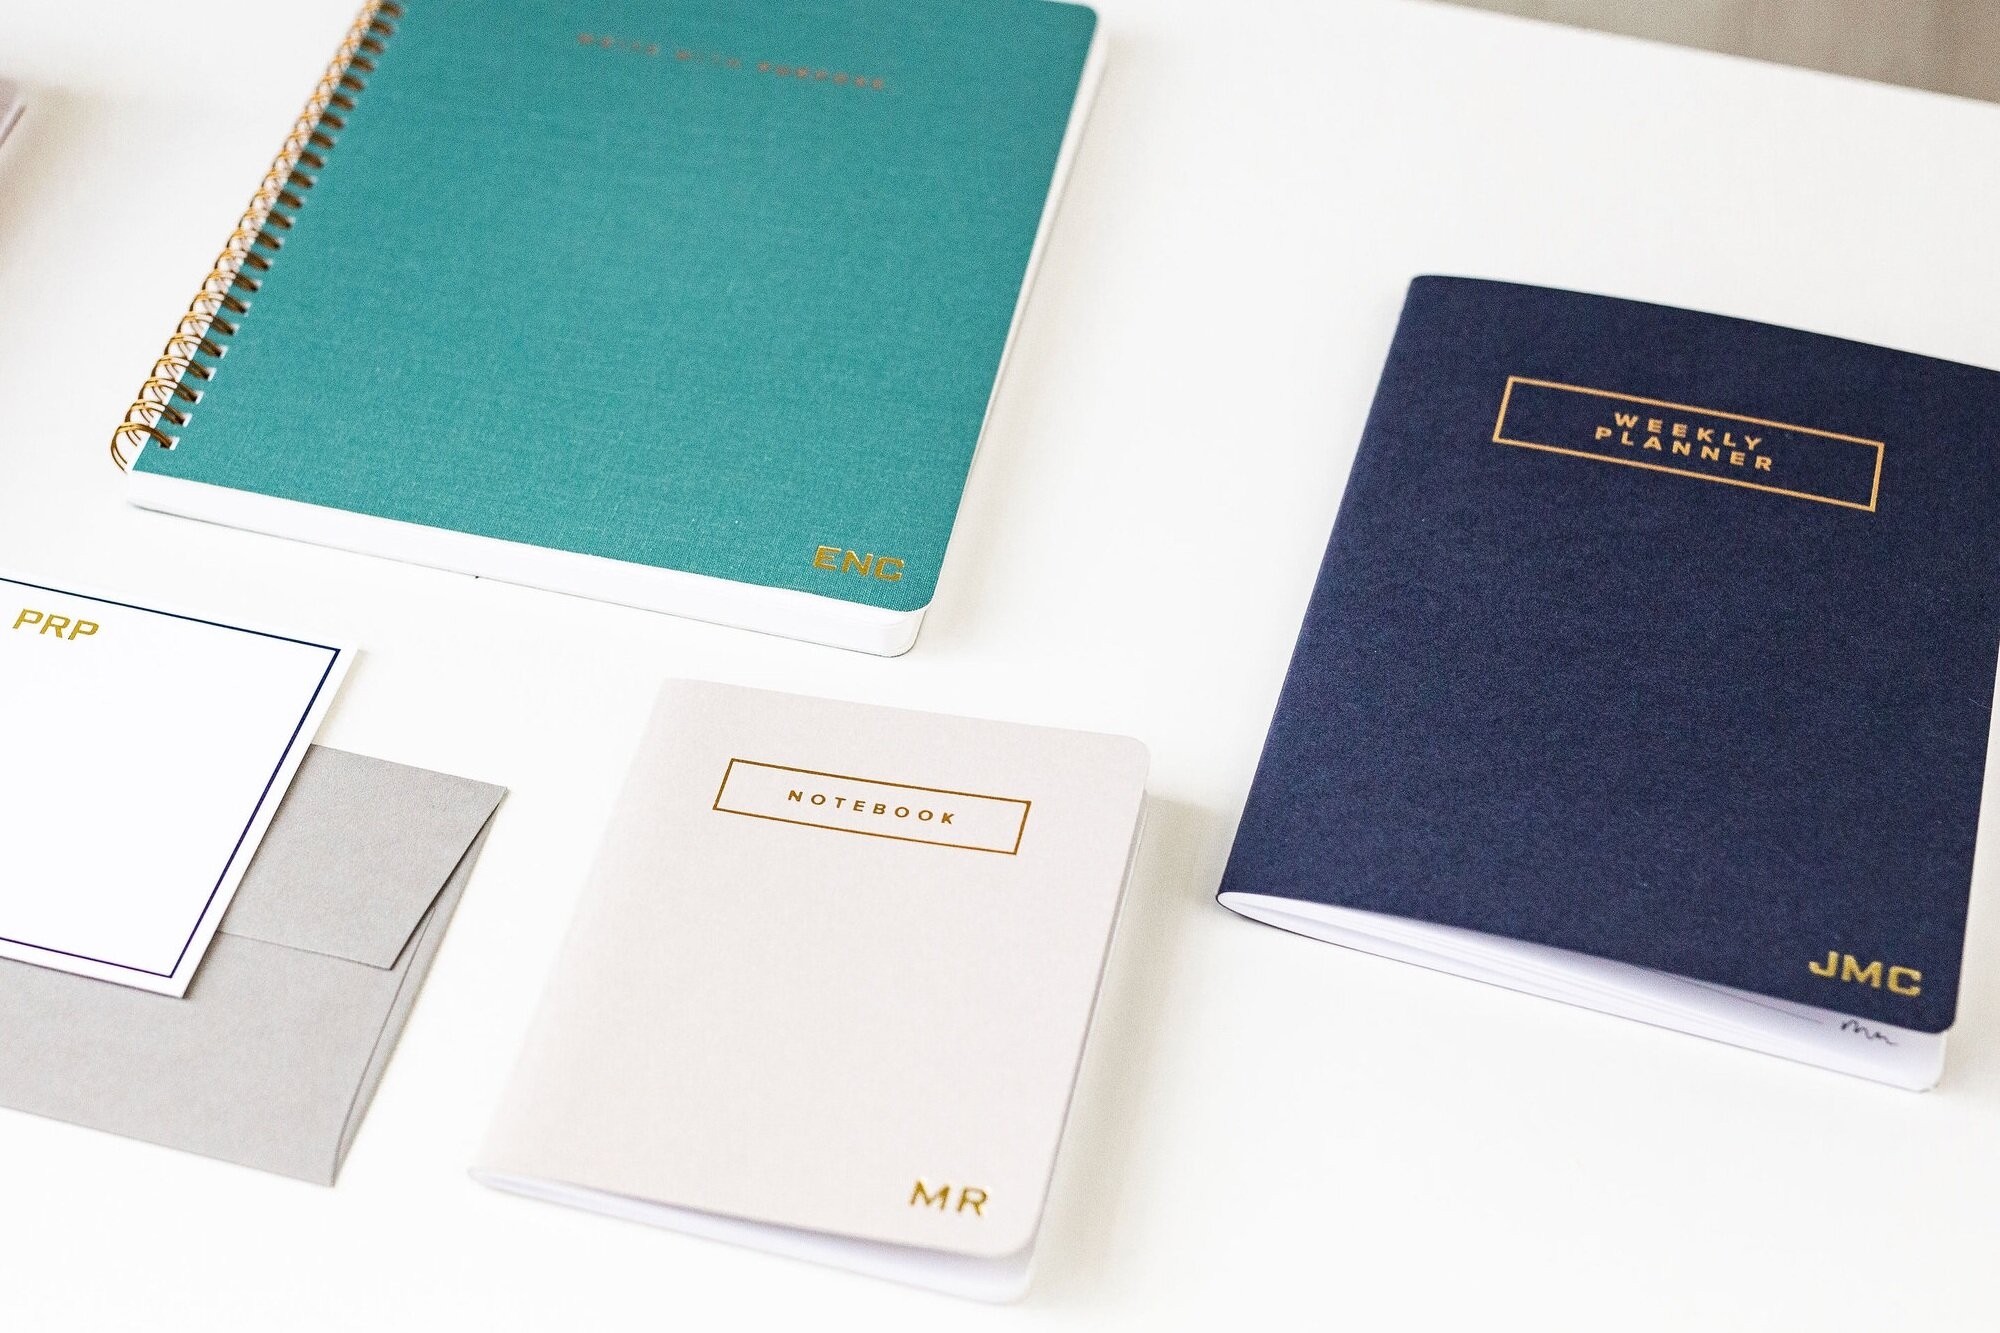 Examples of Marie Mae's items that can include a personal touch. Featuring our social stationery set ($16), the 'write with purpose' notebook in Steel Blue ($28), the small notebook in Cobblestone ($8), and the weekly planner in Navy ($14).